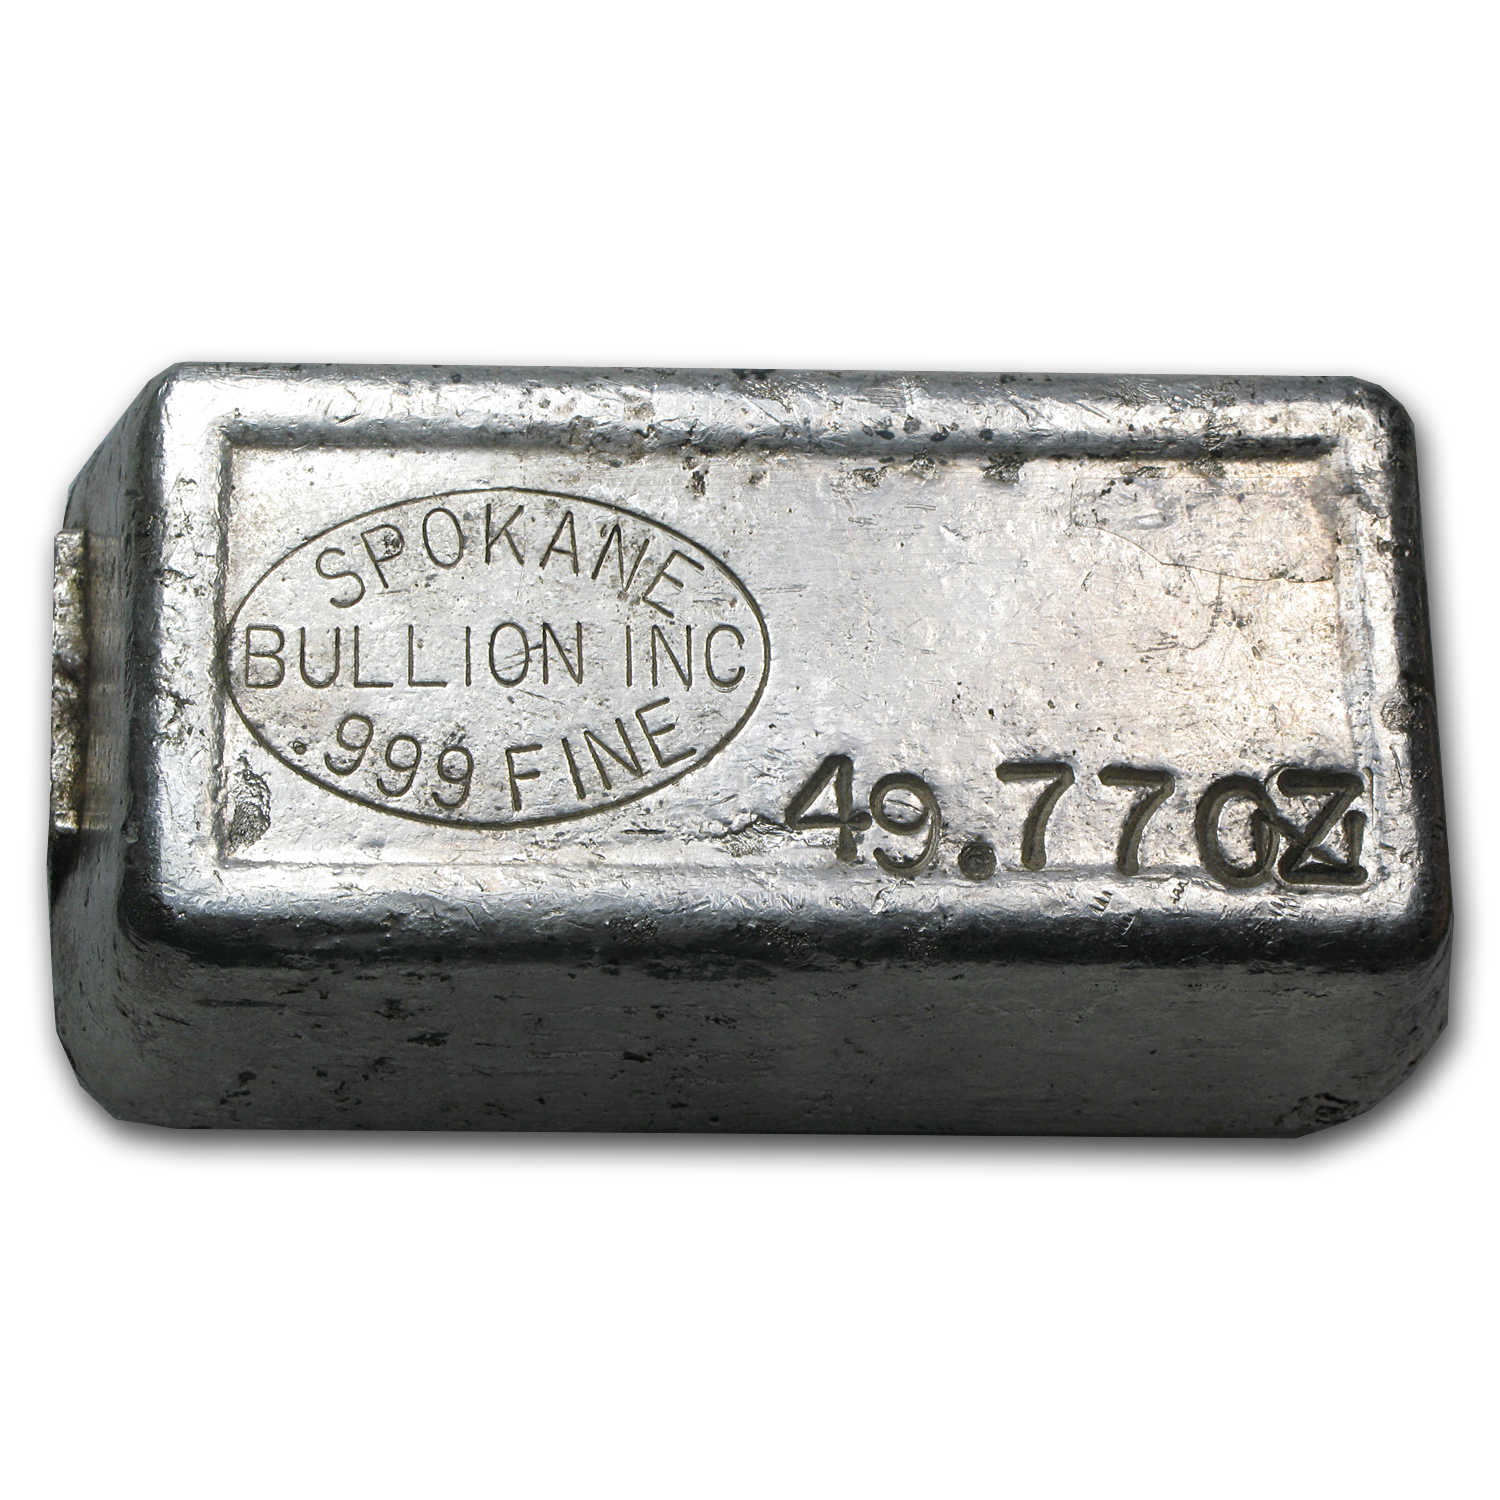 49.77 oz Silver Bar - Spokane Bullion Inc